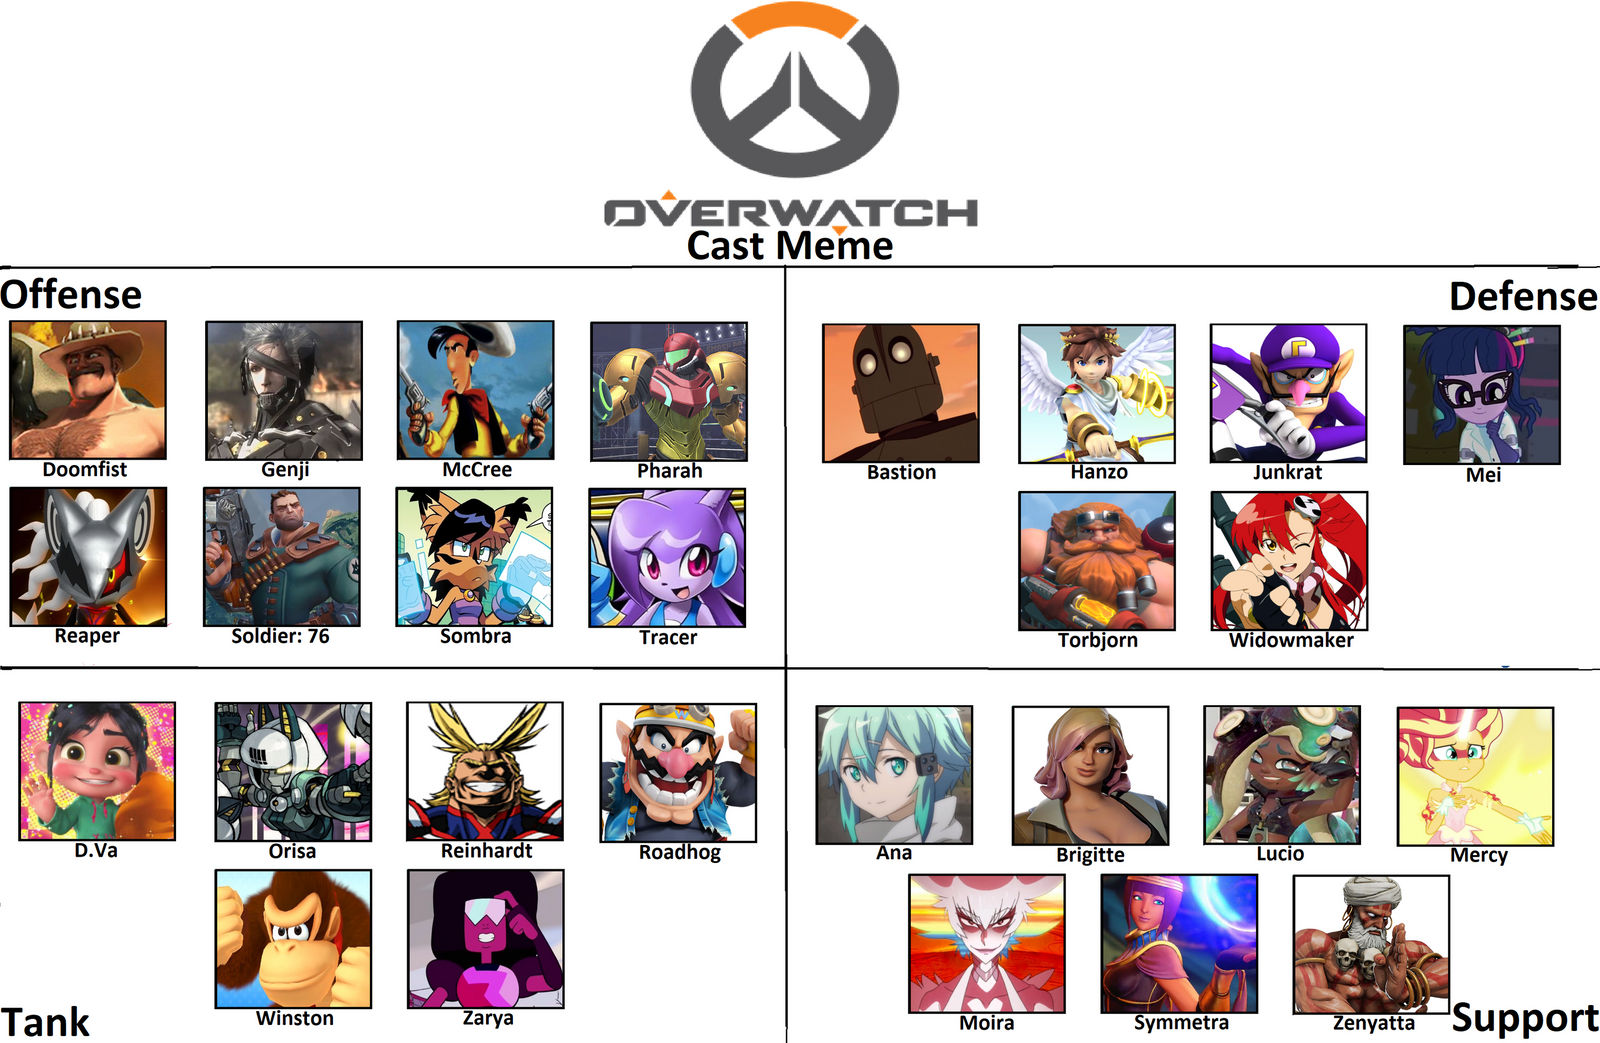 crossover overwatch cast meme by oudieth on deviantart